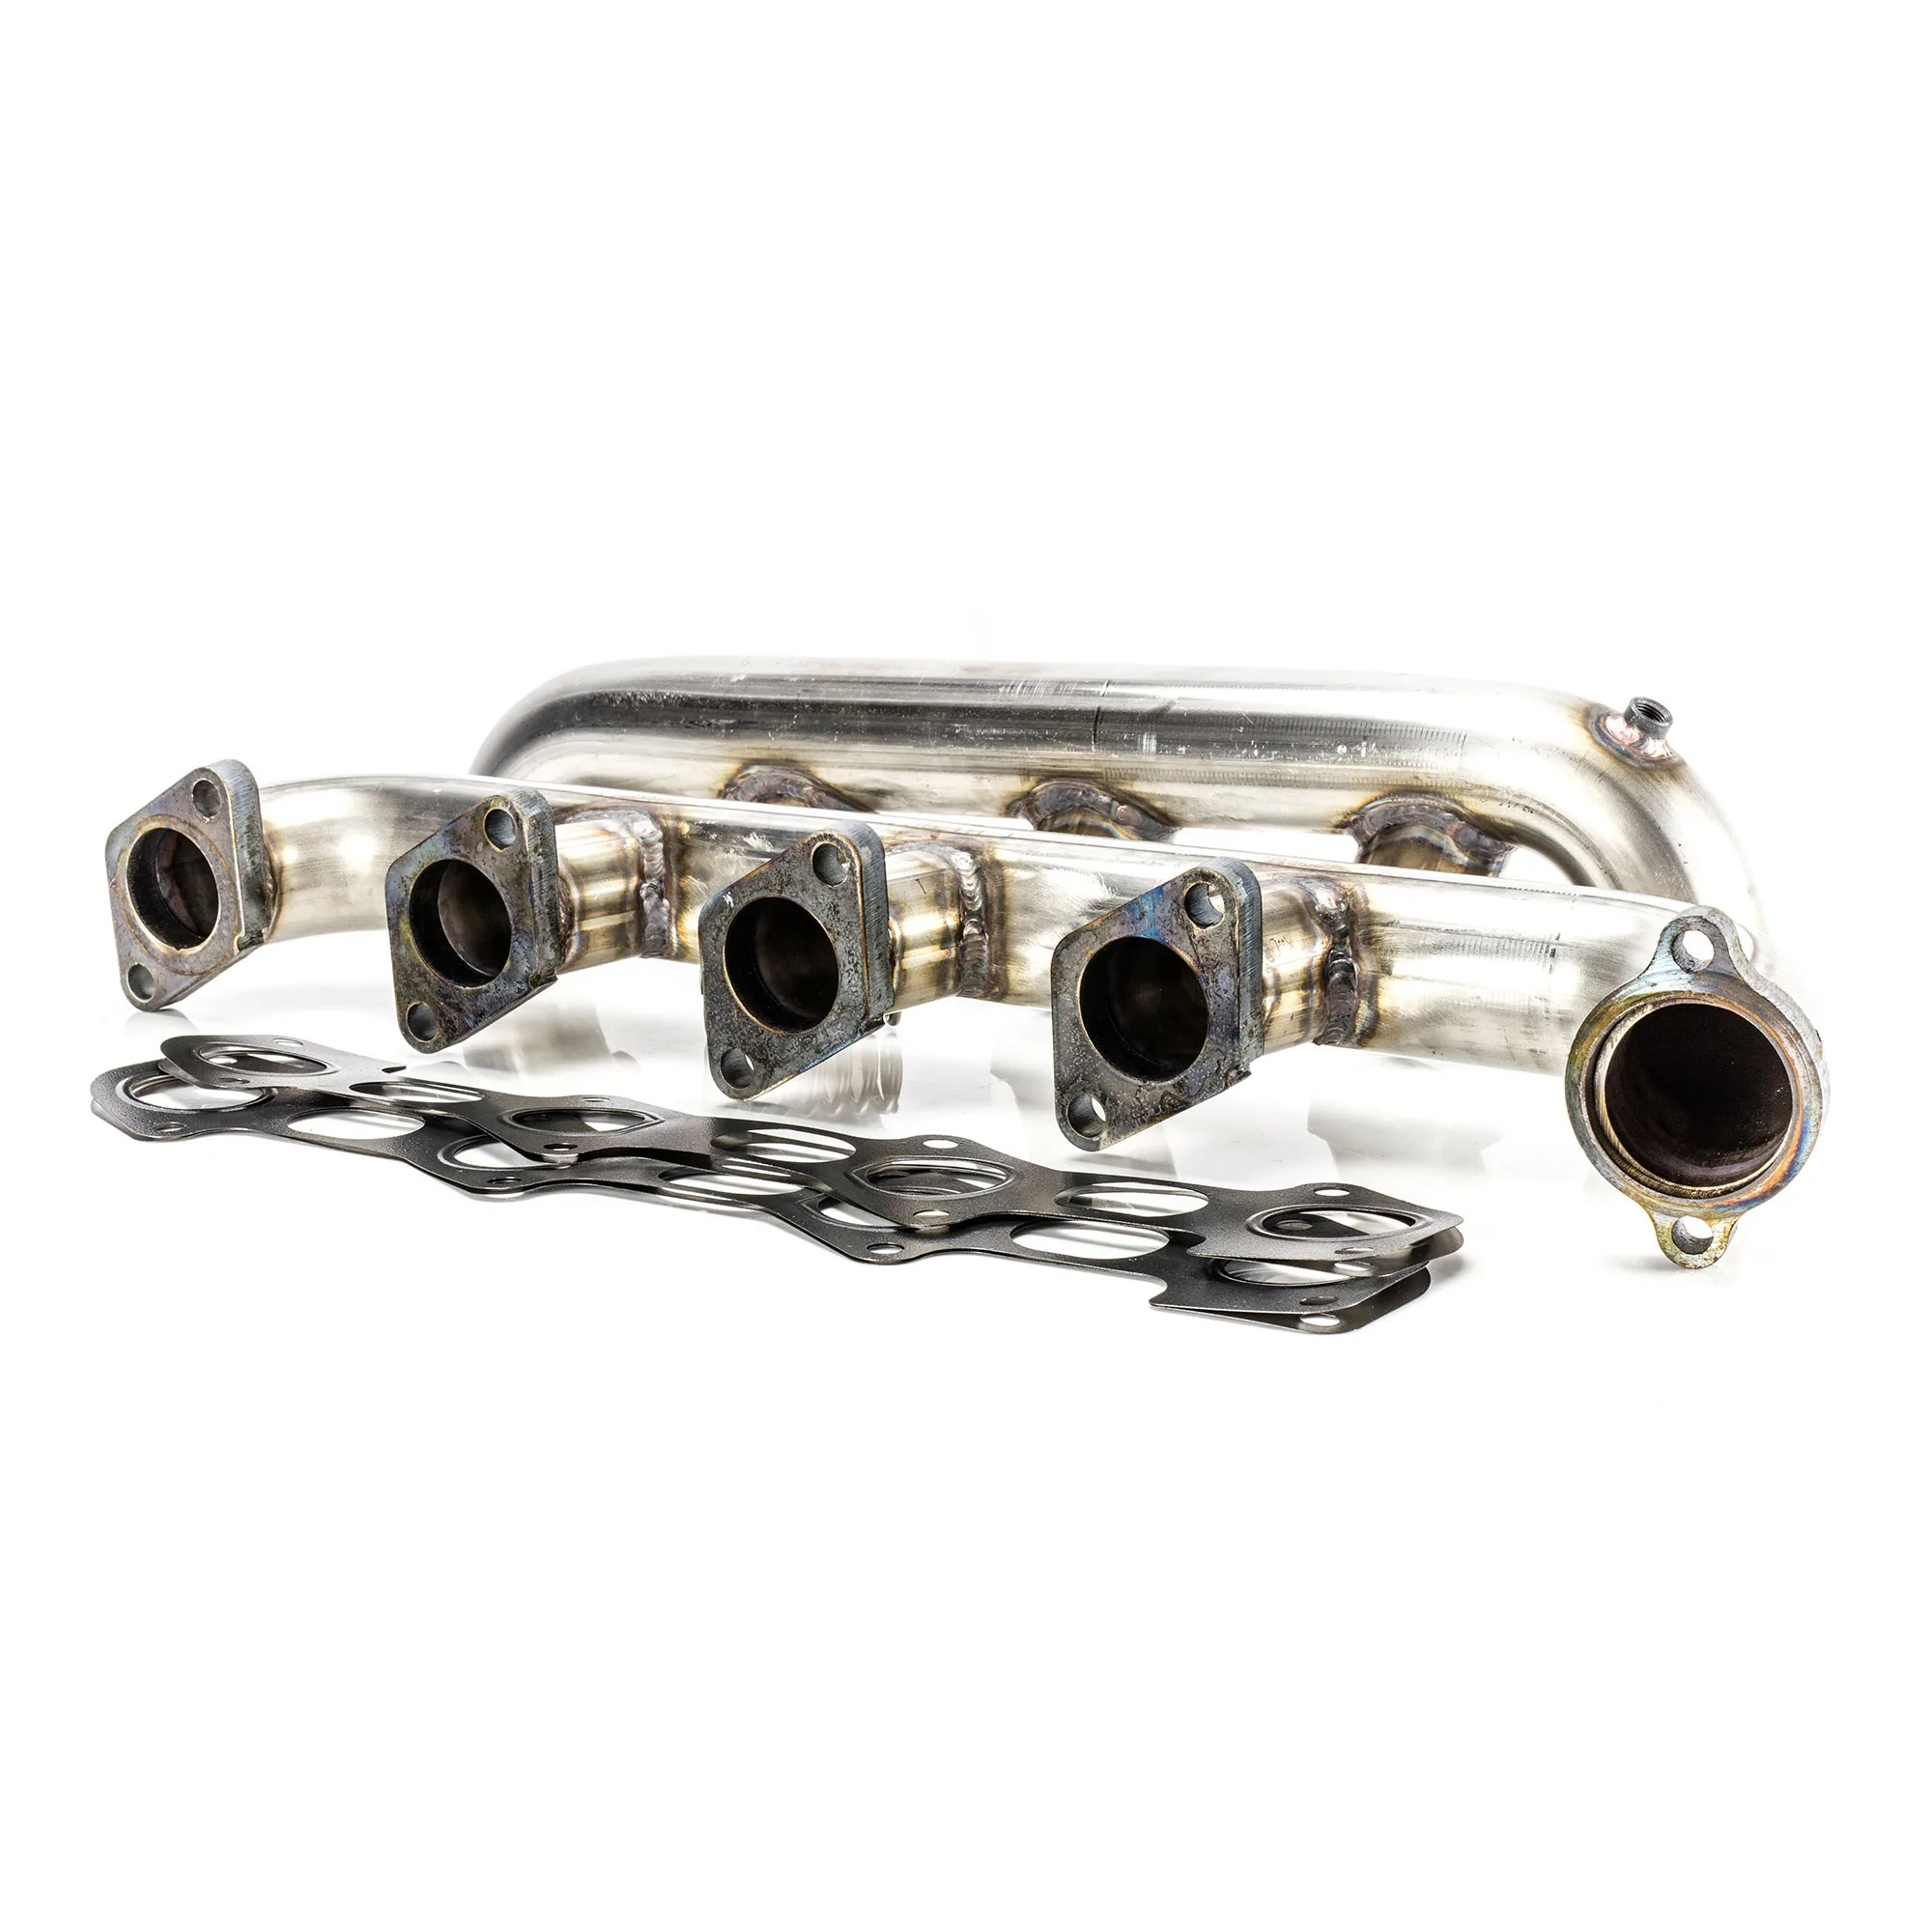 6 0l ford power stroke 304 stainless steel tubular exhaust manifold set